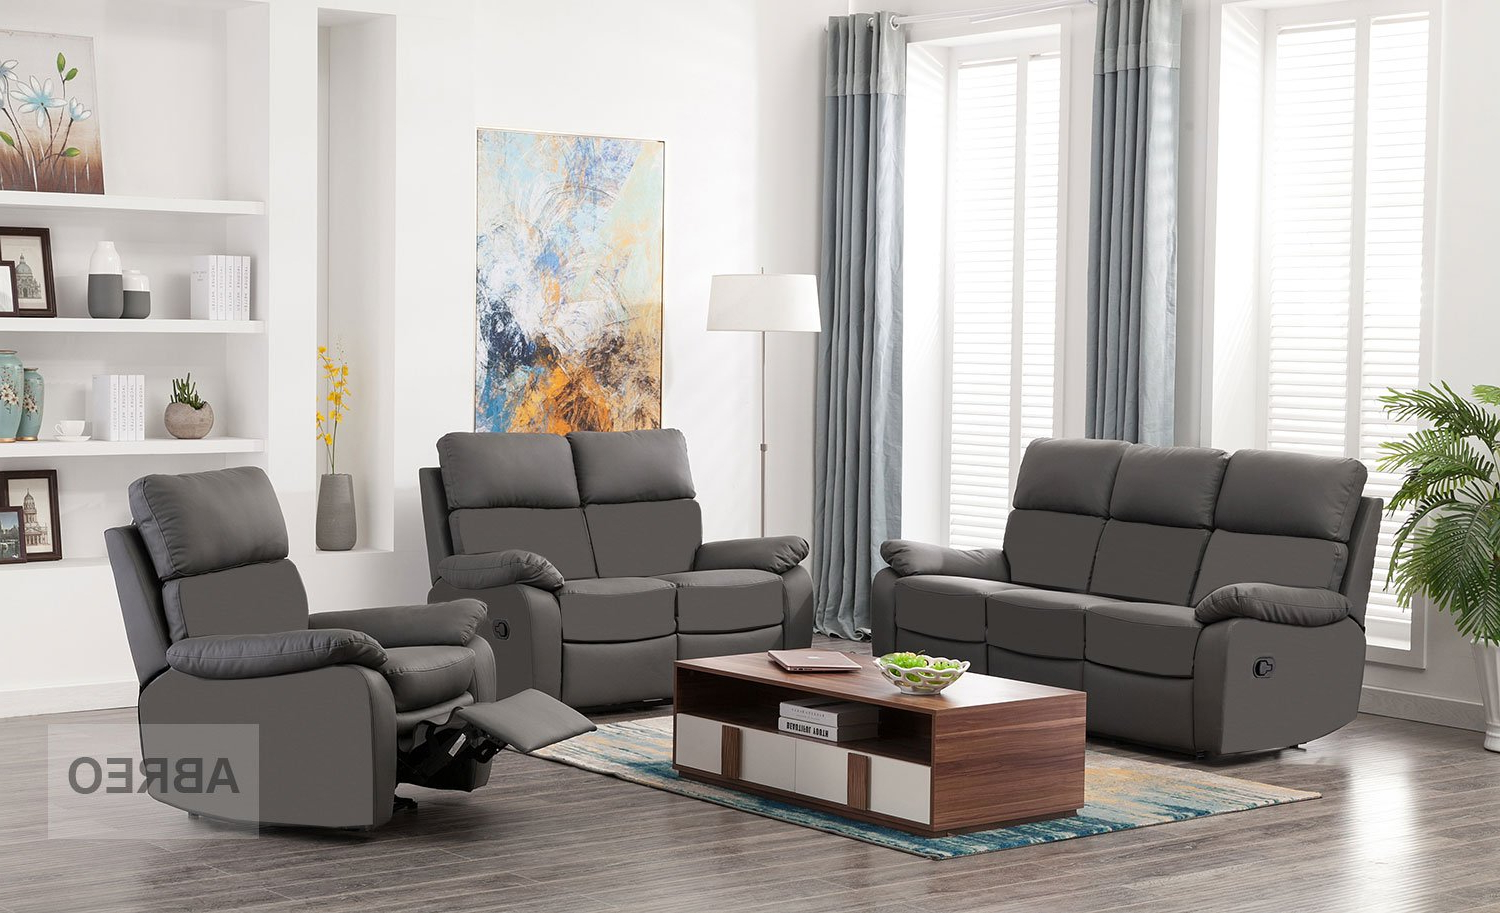 Amala Dark Grey Leather Reclining Swivel Chairs Intended For Famous Seater Leather Recliner Sofa Reclining Armchairs Living Room (View 2 of 20)